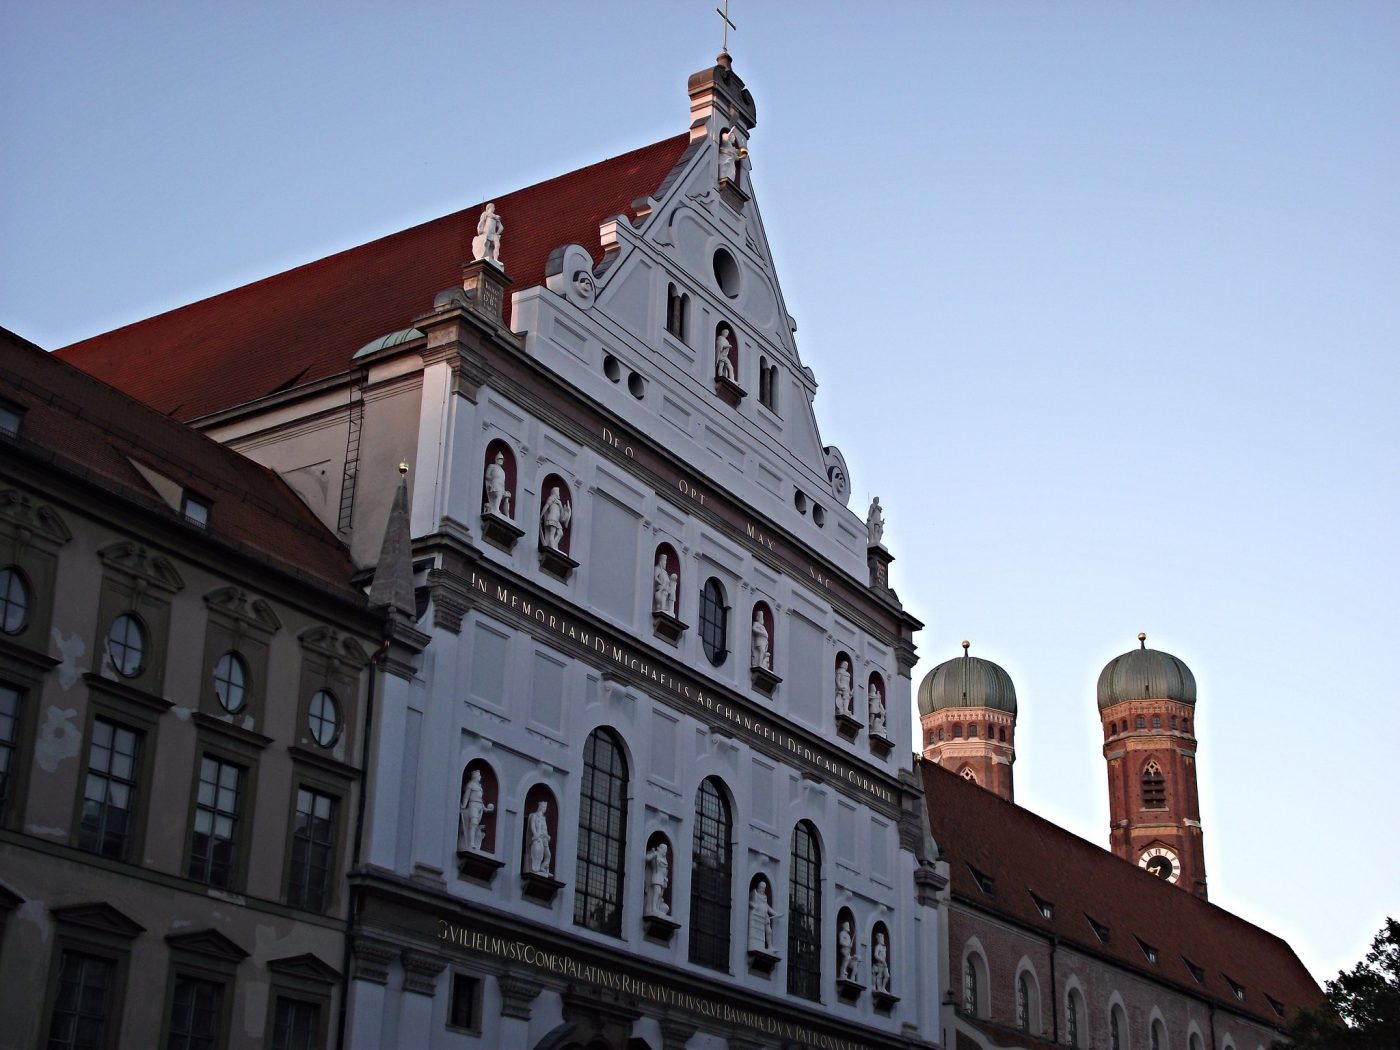 https://www.flickr.com/photos/129231073@N06/15801849811, where to stay in munich